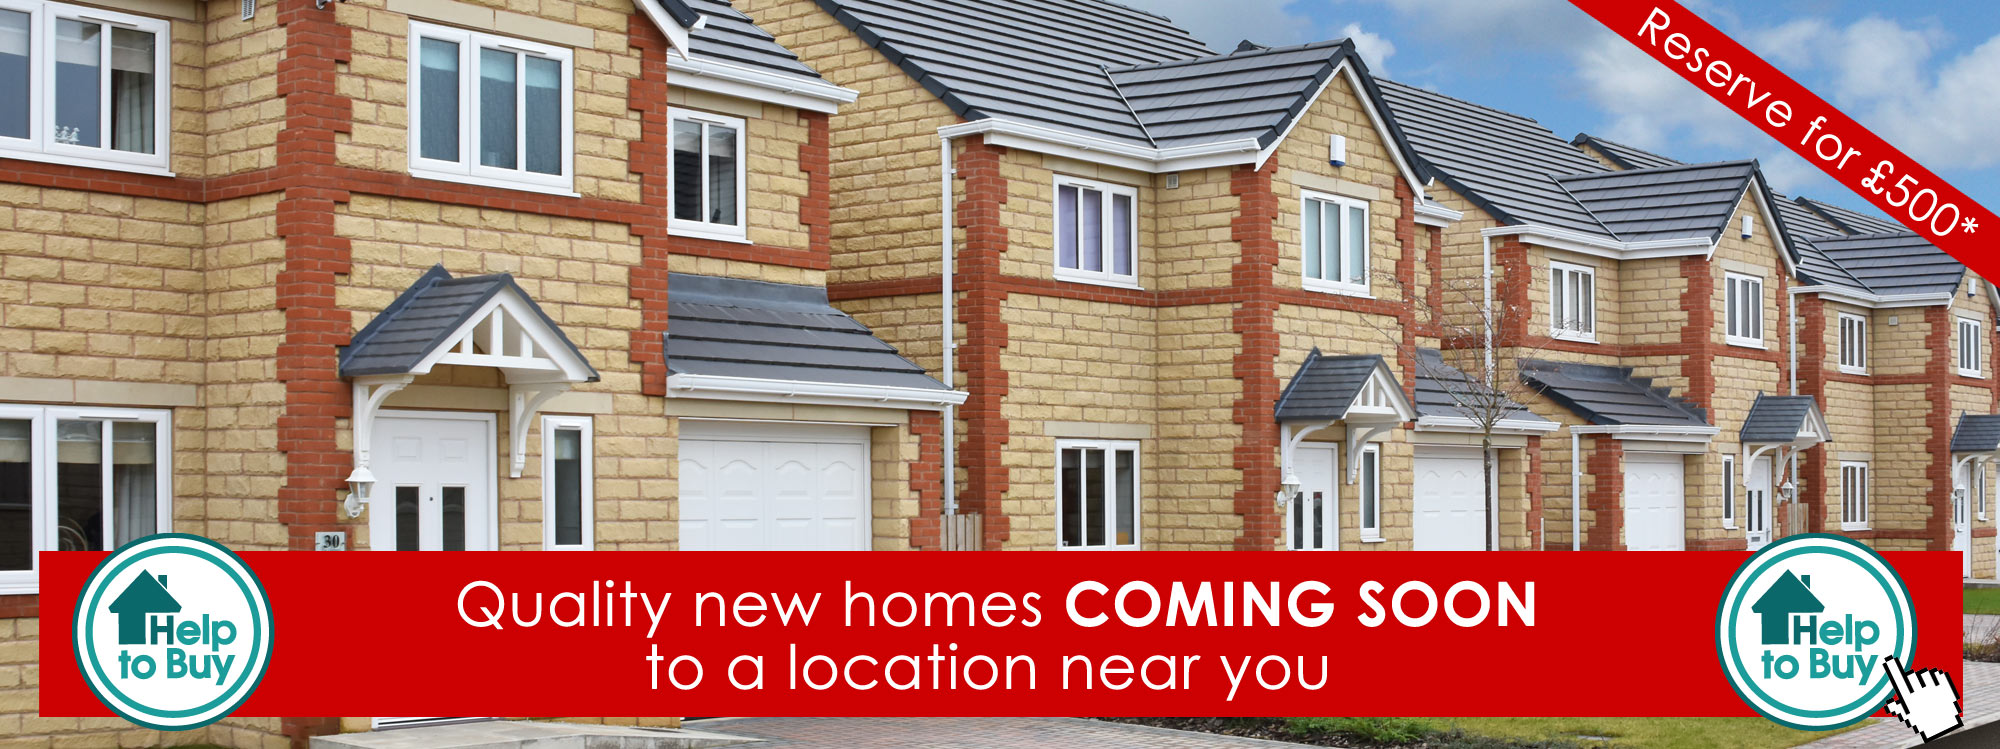 new homes for sale Yorkshire - coming soon to a town or village near you